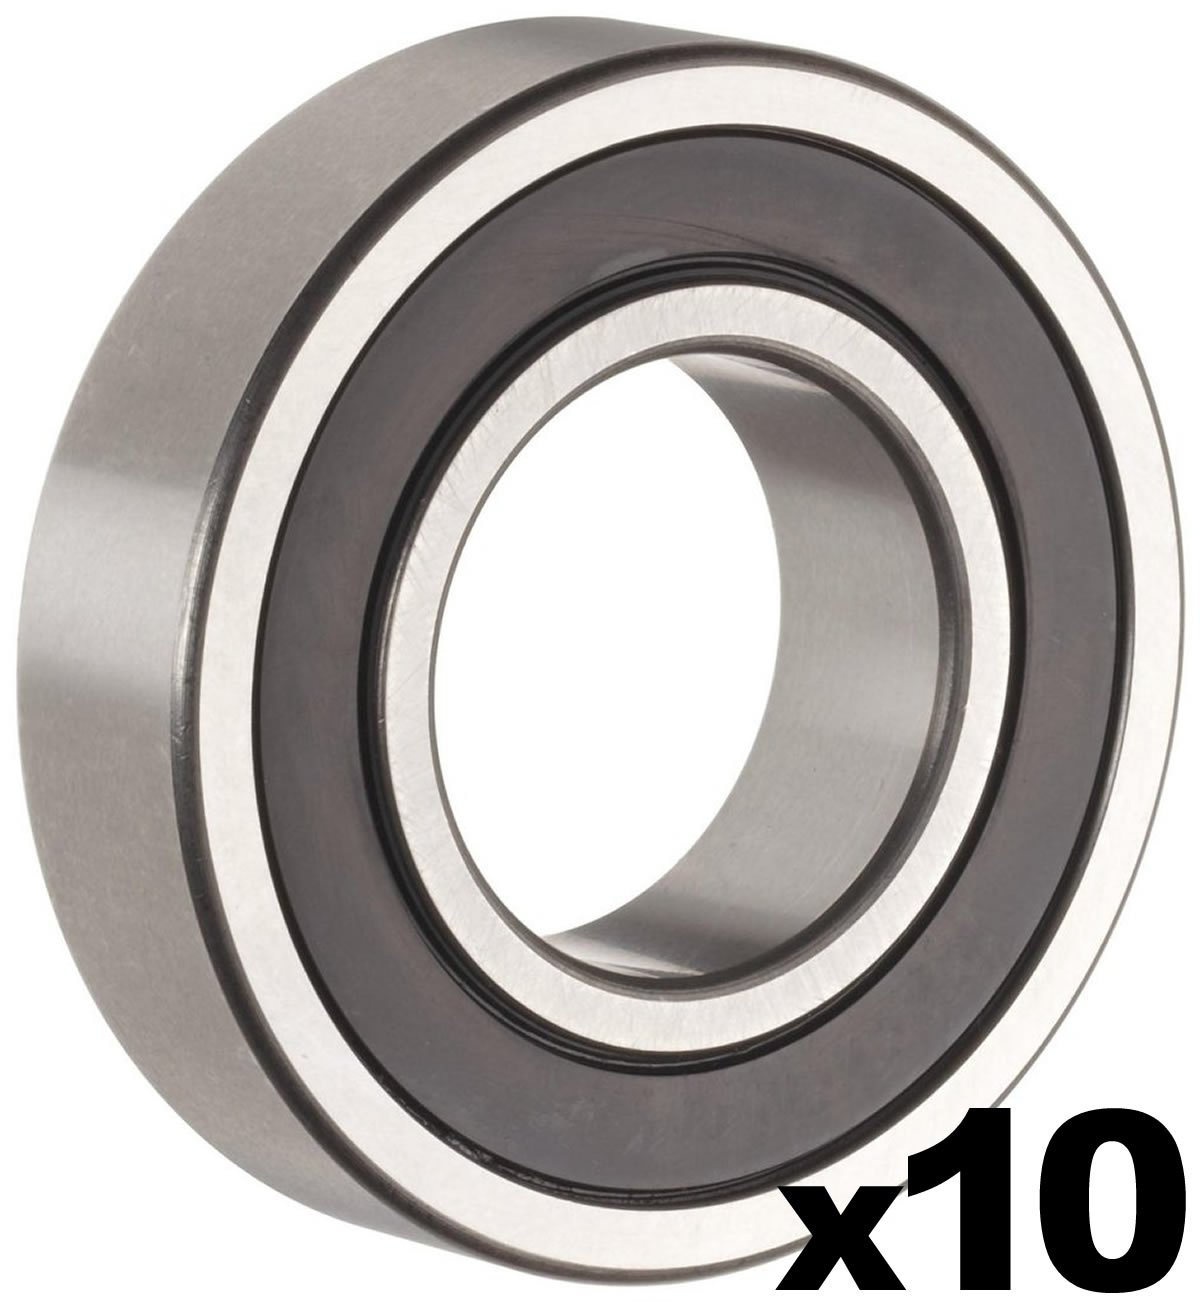 6203-2RS Sealed Ball Bearing - 17x40x12 - Lubricated - Chrome Steel (10 PCS) PGN